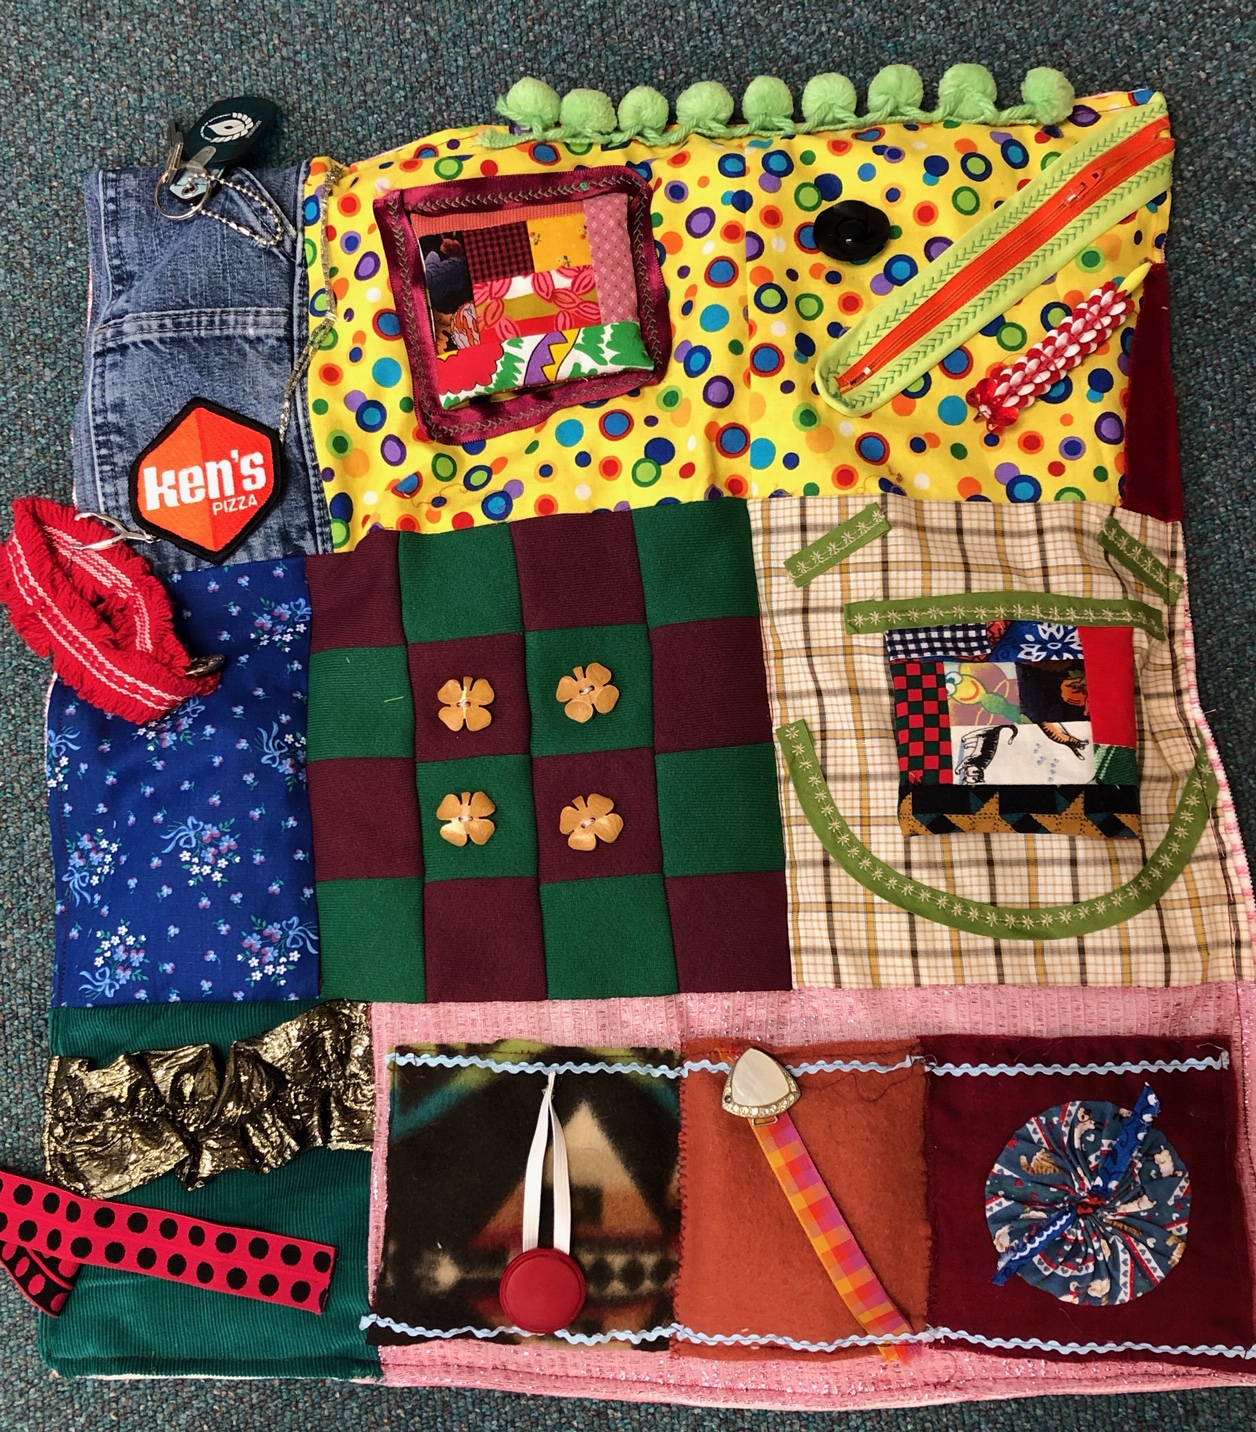 Fidget Blanket by Margaret Jones (90 year old member of First Presbyterian Church). Hear more on Margaret's involvement in the featured video (right).